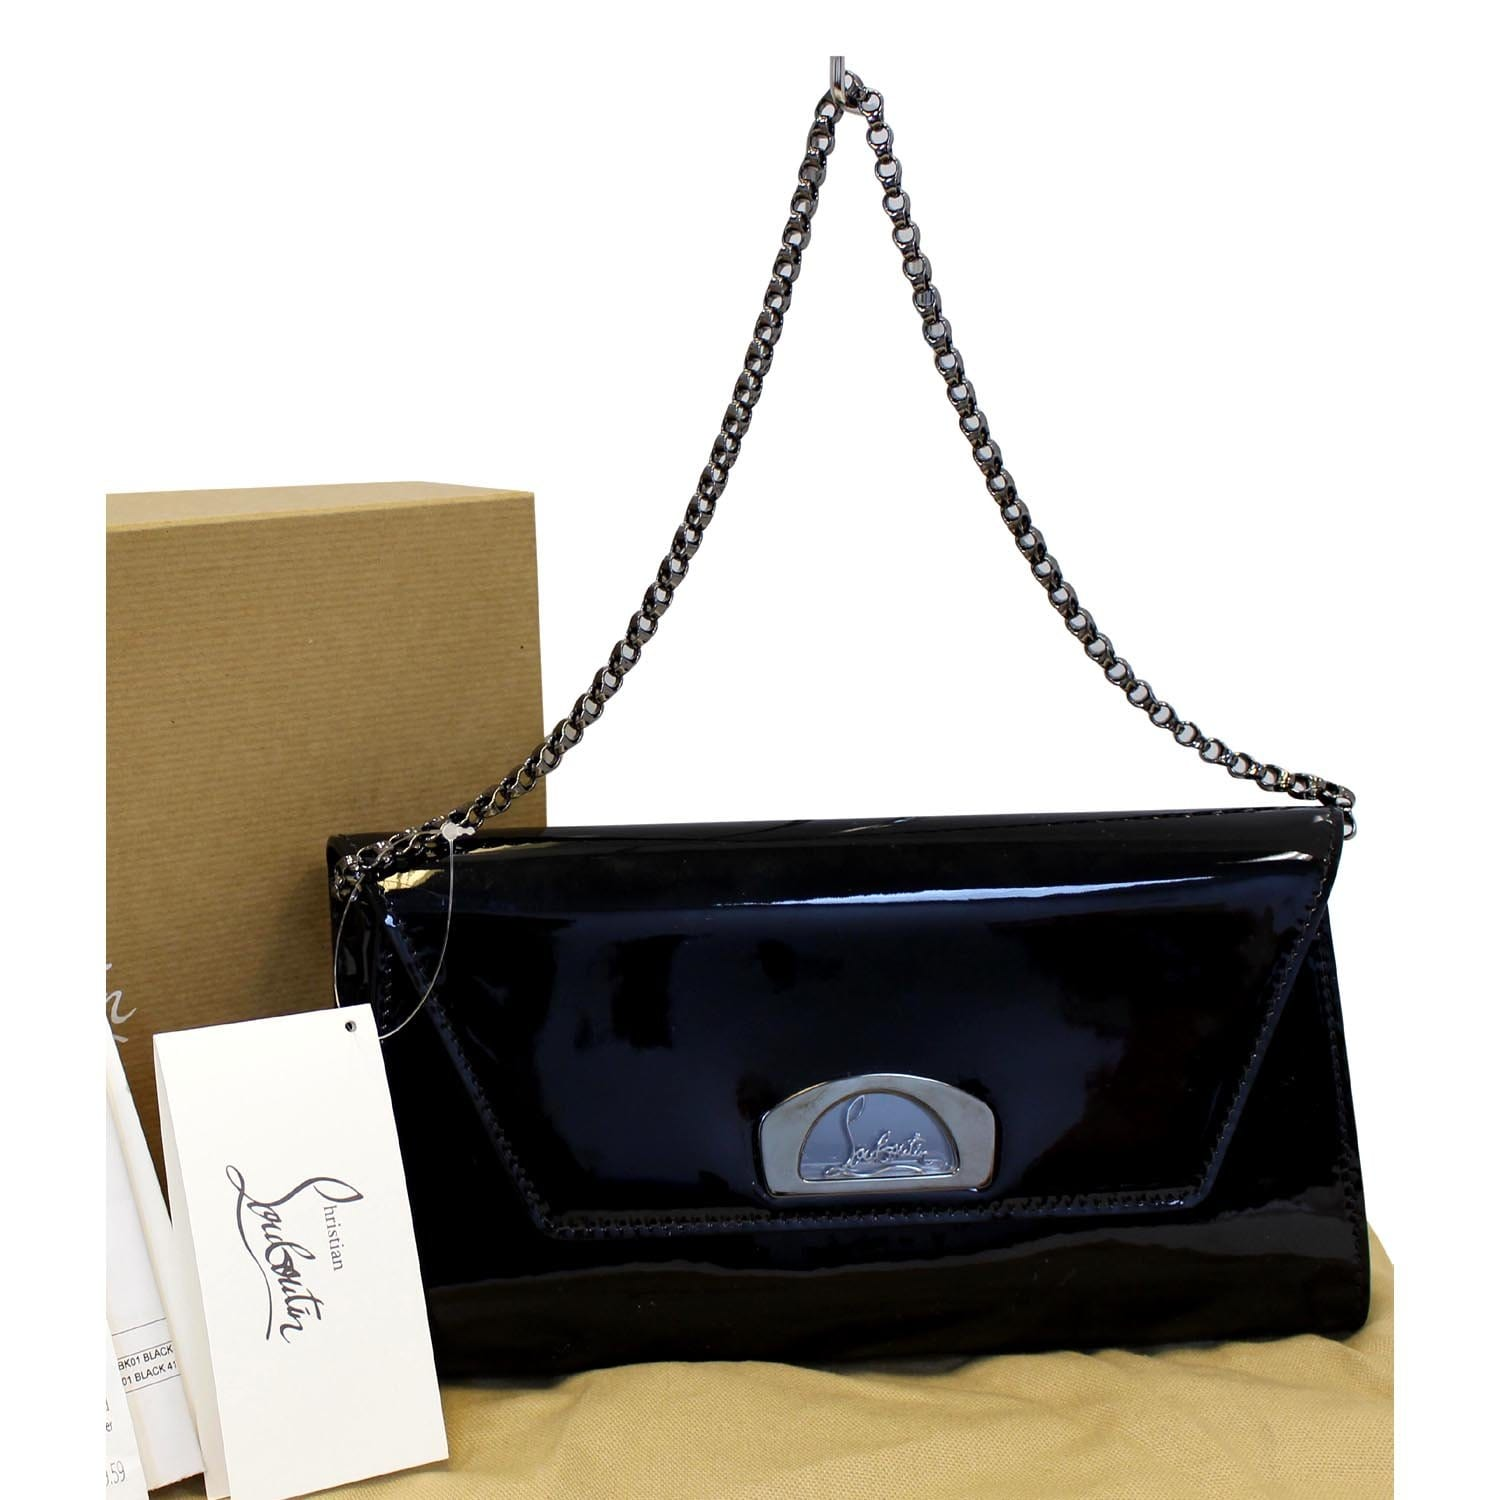 6805bf8fc50 Christian Louboutin Vero Dodat Patent Leather Clutch Bag Black-US